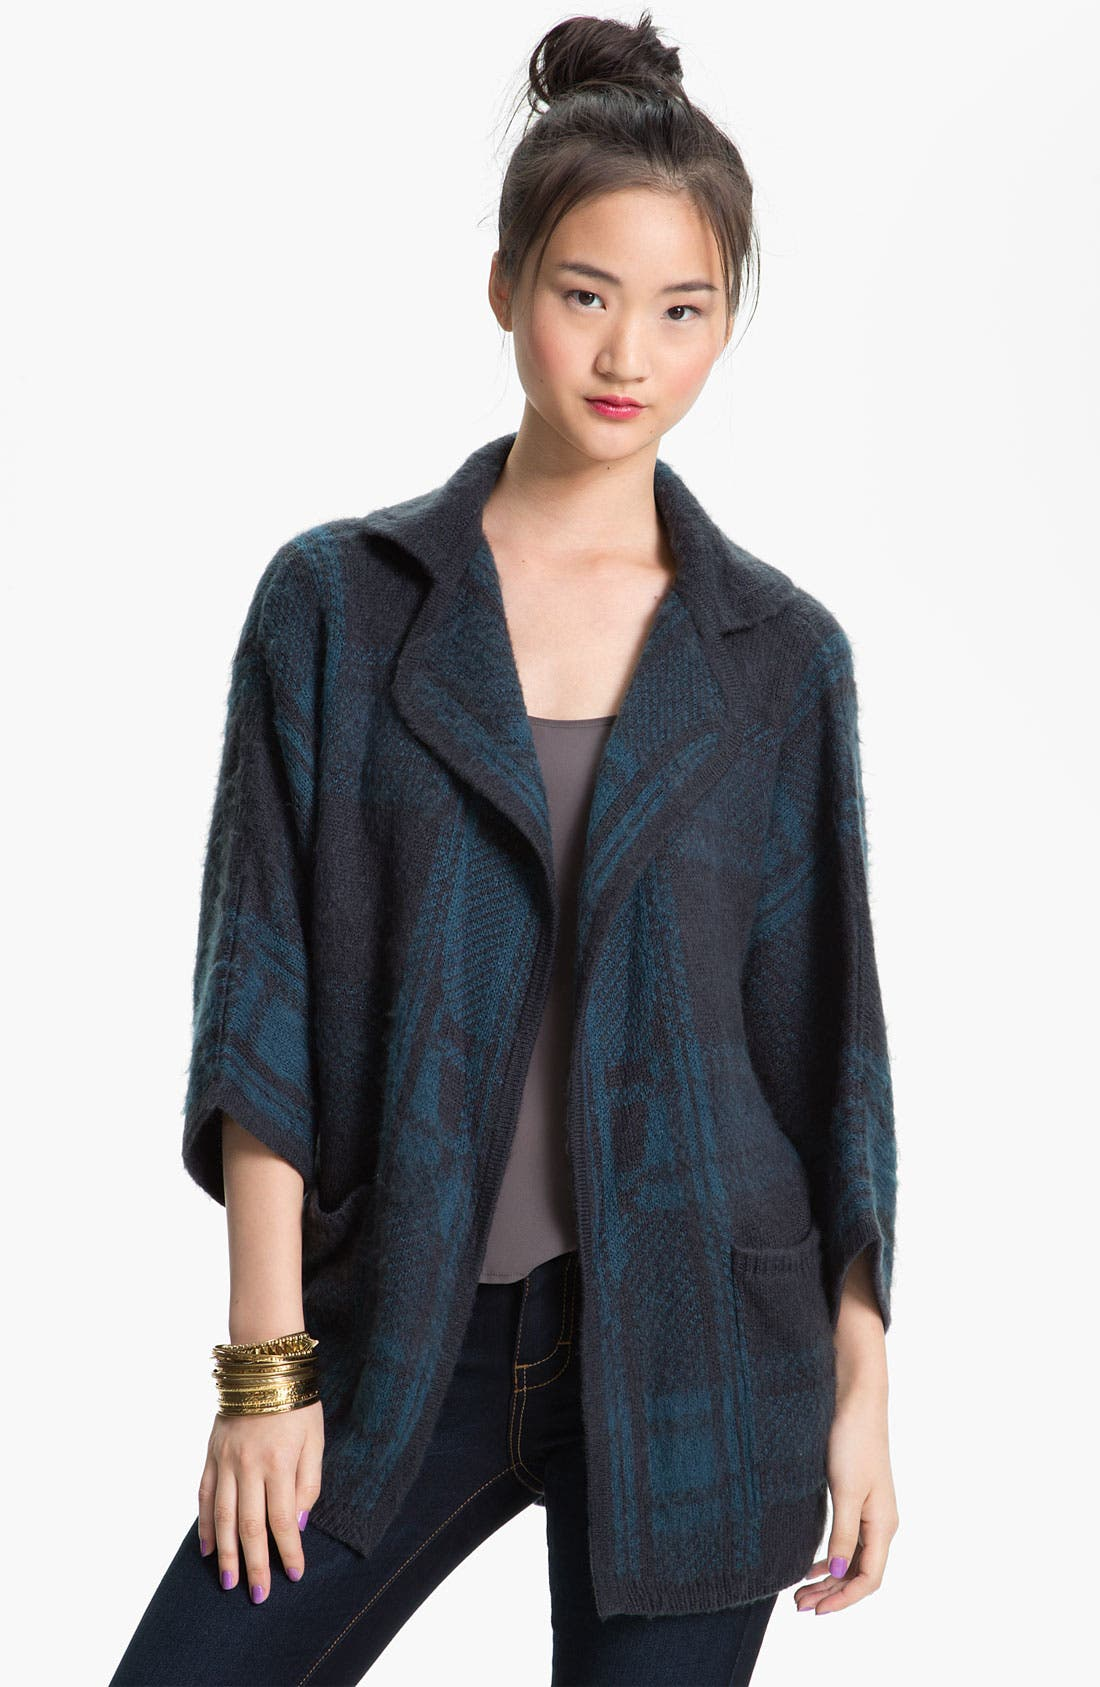 Alternate Image 1 Selected - Rubbish® Plaid Knit Cardigan (Juniors)